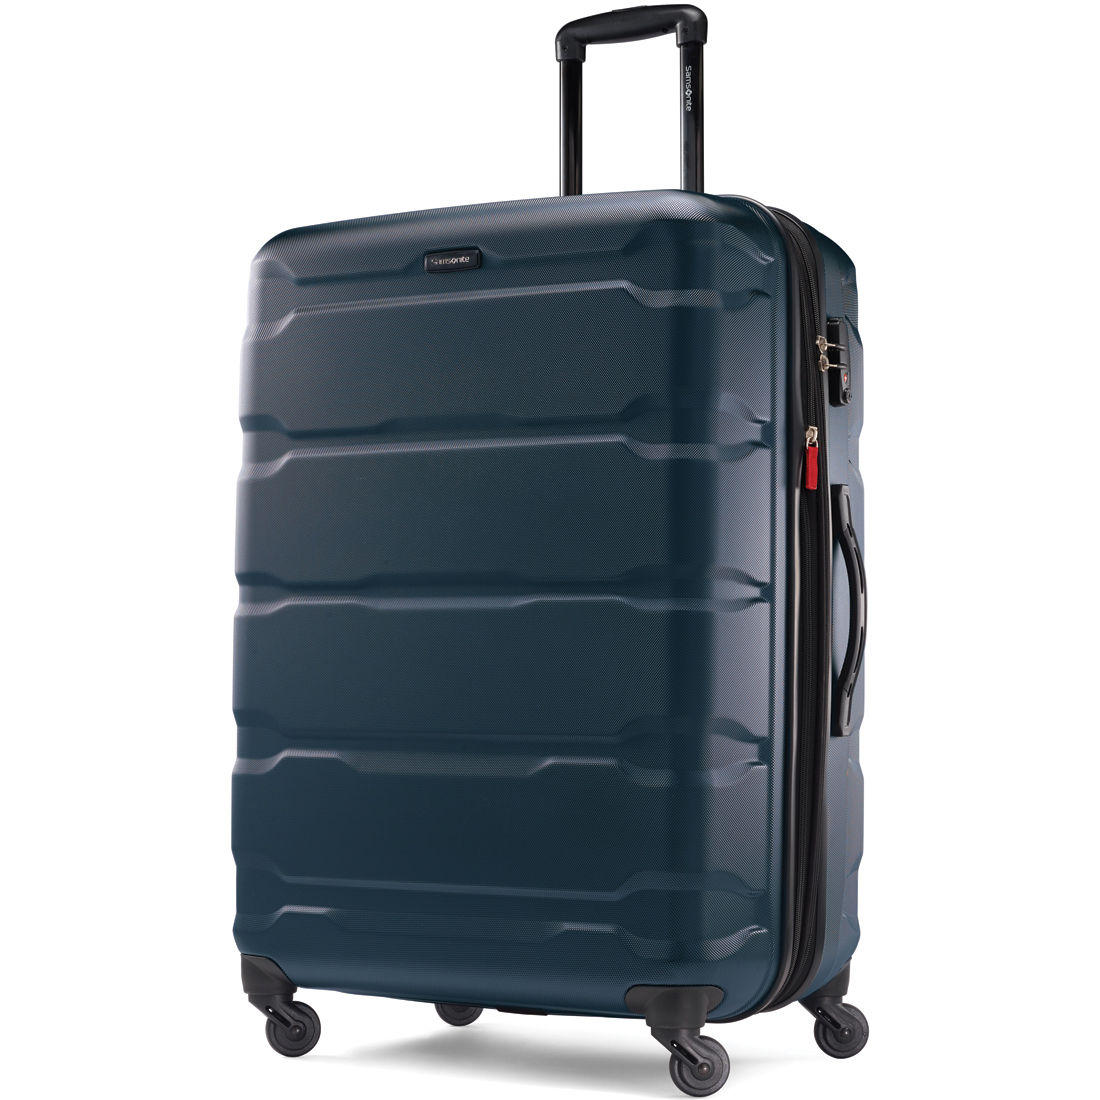 Samsonite Omni Hardside Luggage 28